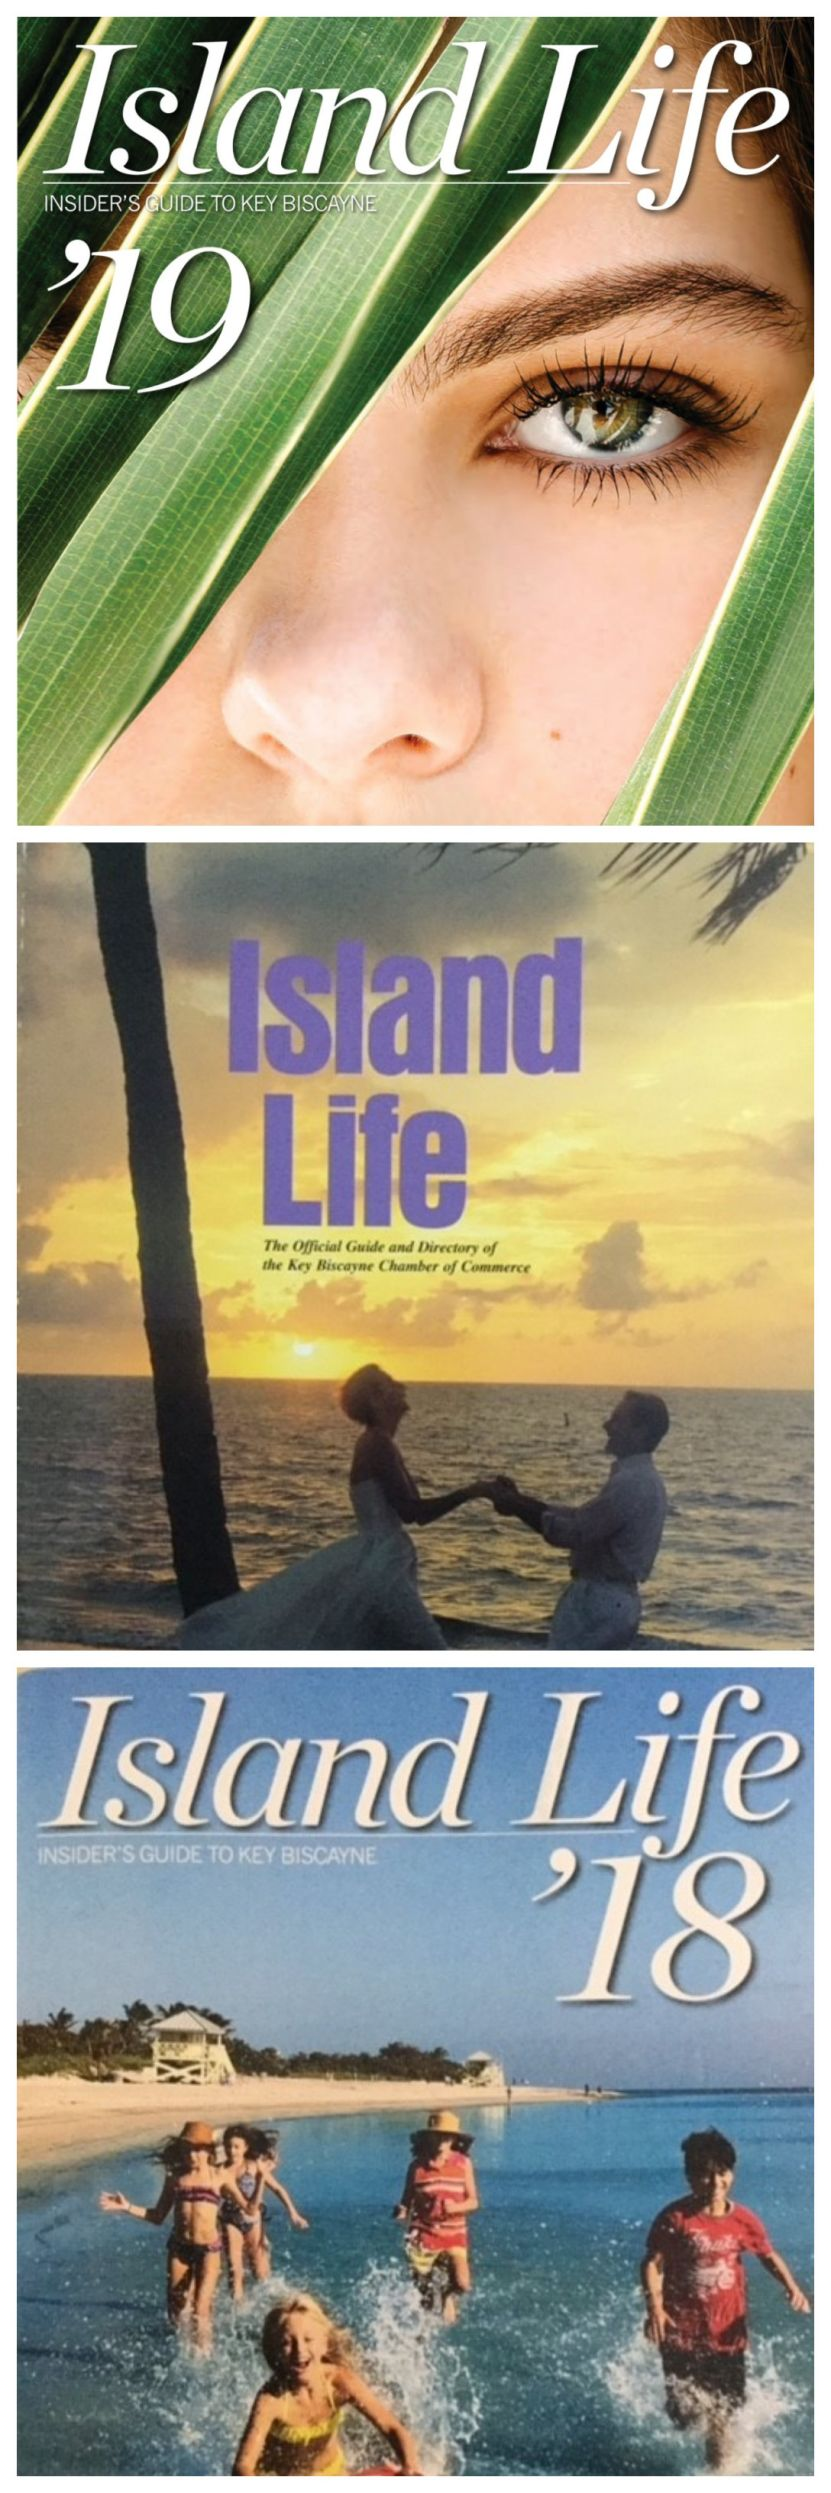 Island Life, a Key Biscayne tradition, now in its 25th year